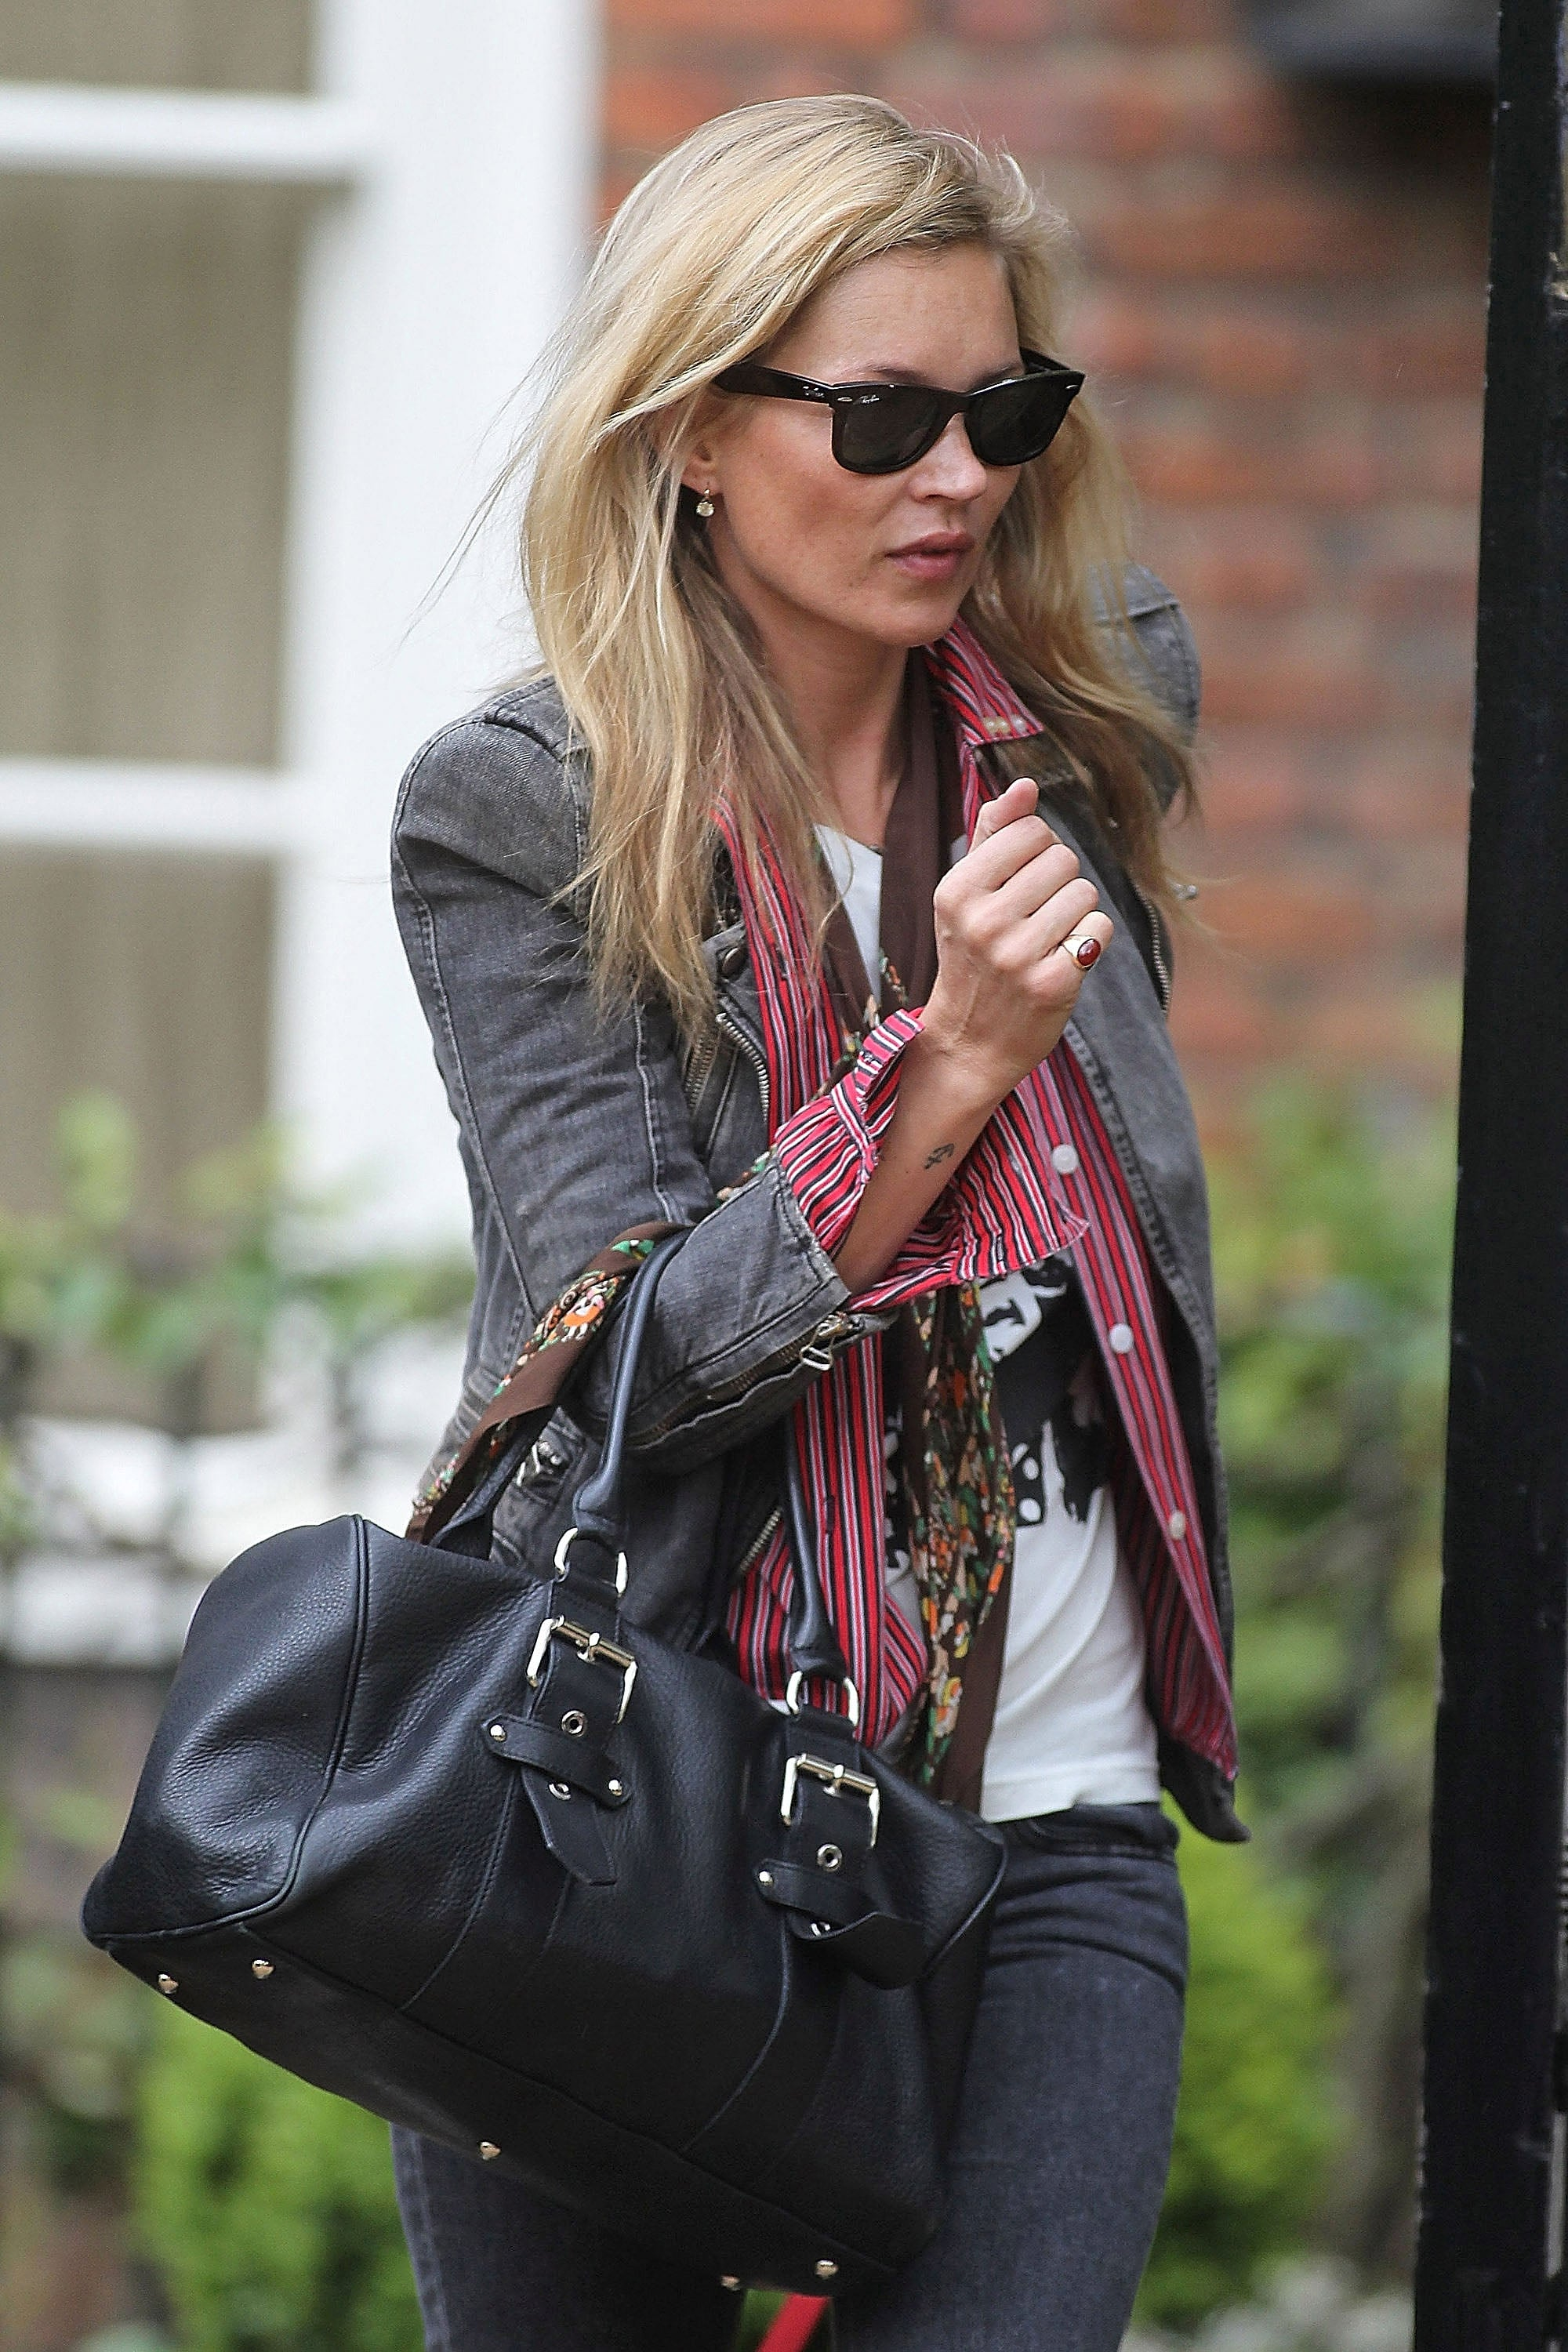 LONDON, UNITED KINGDOM - MAY 05: Kate Moss is seen on May 05, 2012 in London, United Kingdom.  (Photo by TOE/Bauer-Griffin/GC Images)